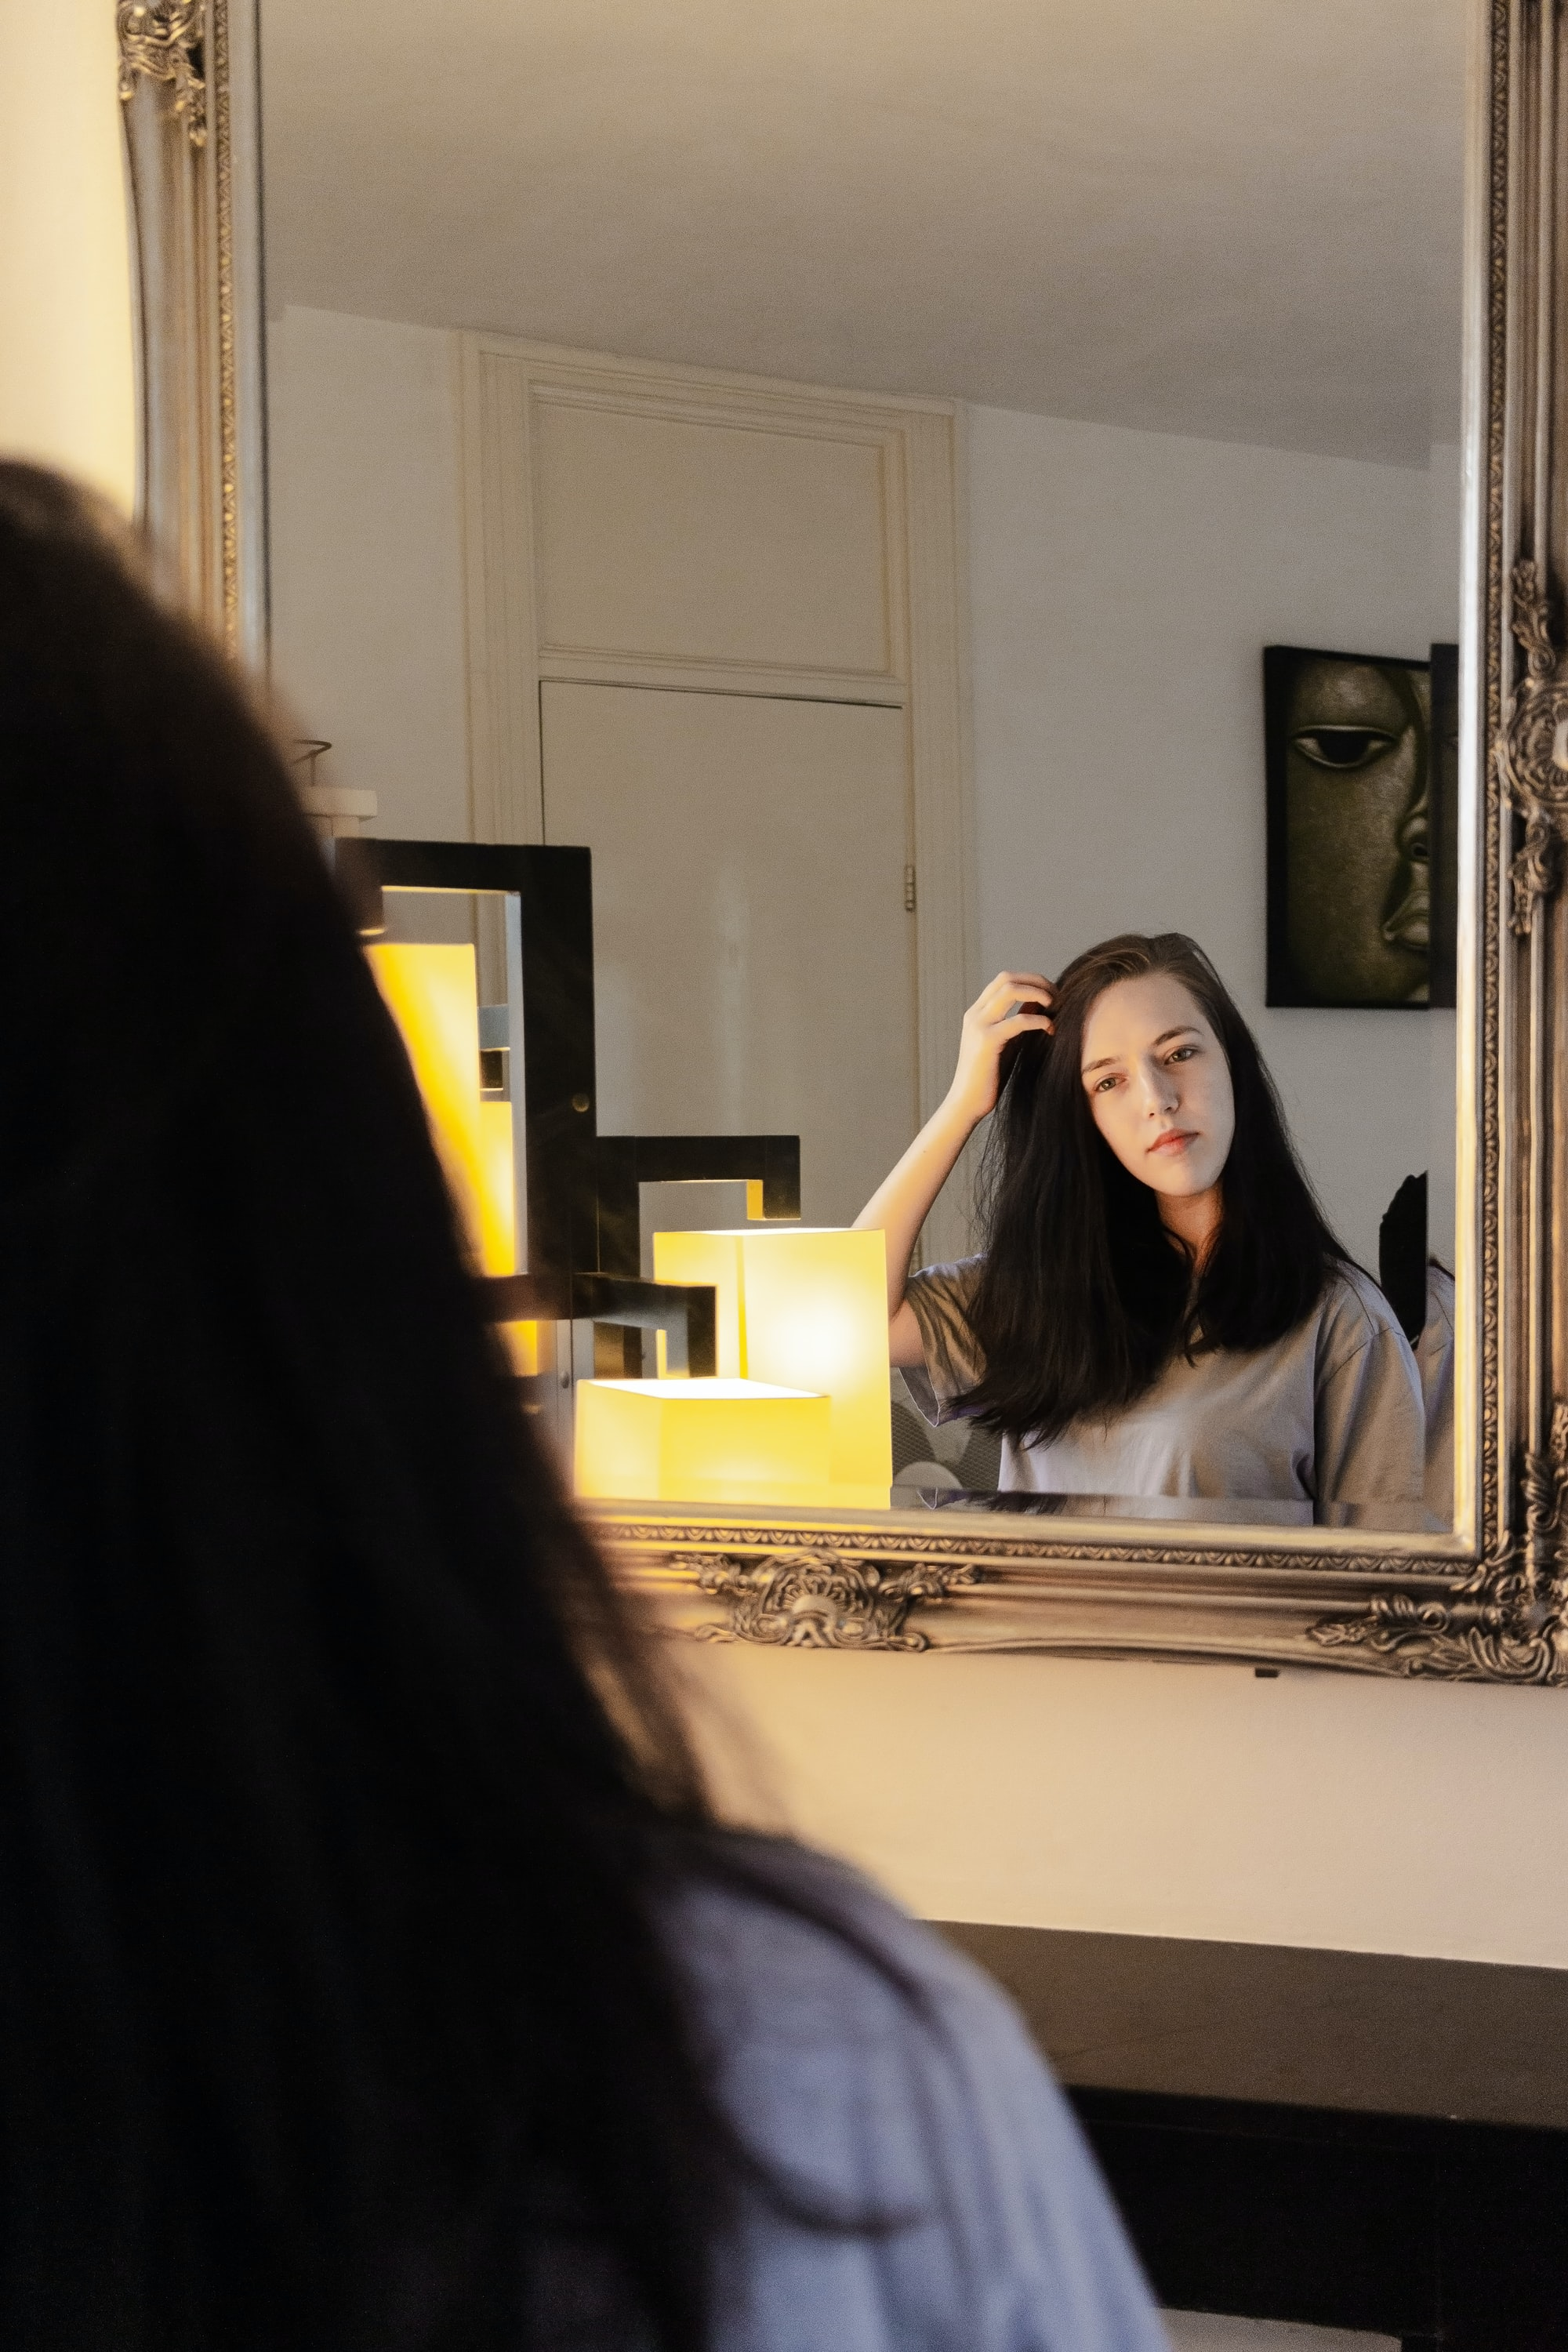 Girl with Black hair looking into mirror in a hotel room